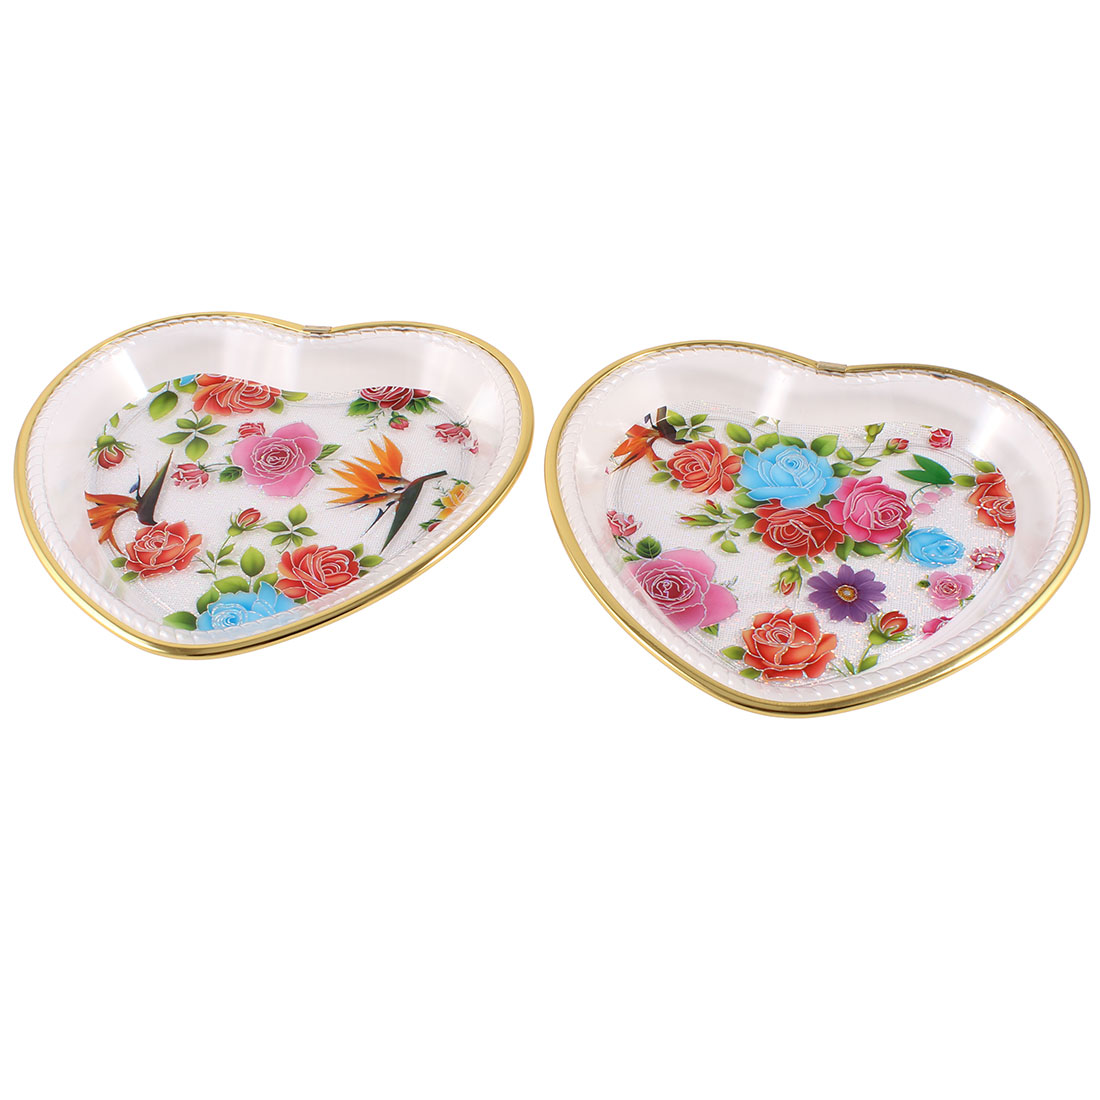 Household Heart Gold Tone Frame Plastic Colorful Floral Pattern Fruit Plate